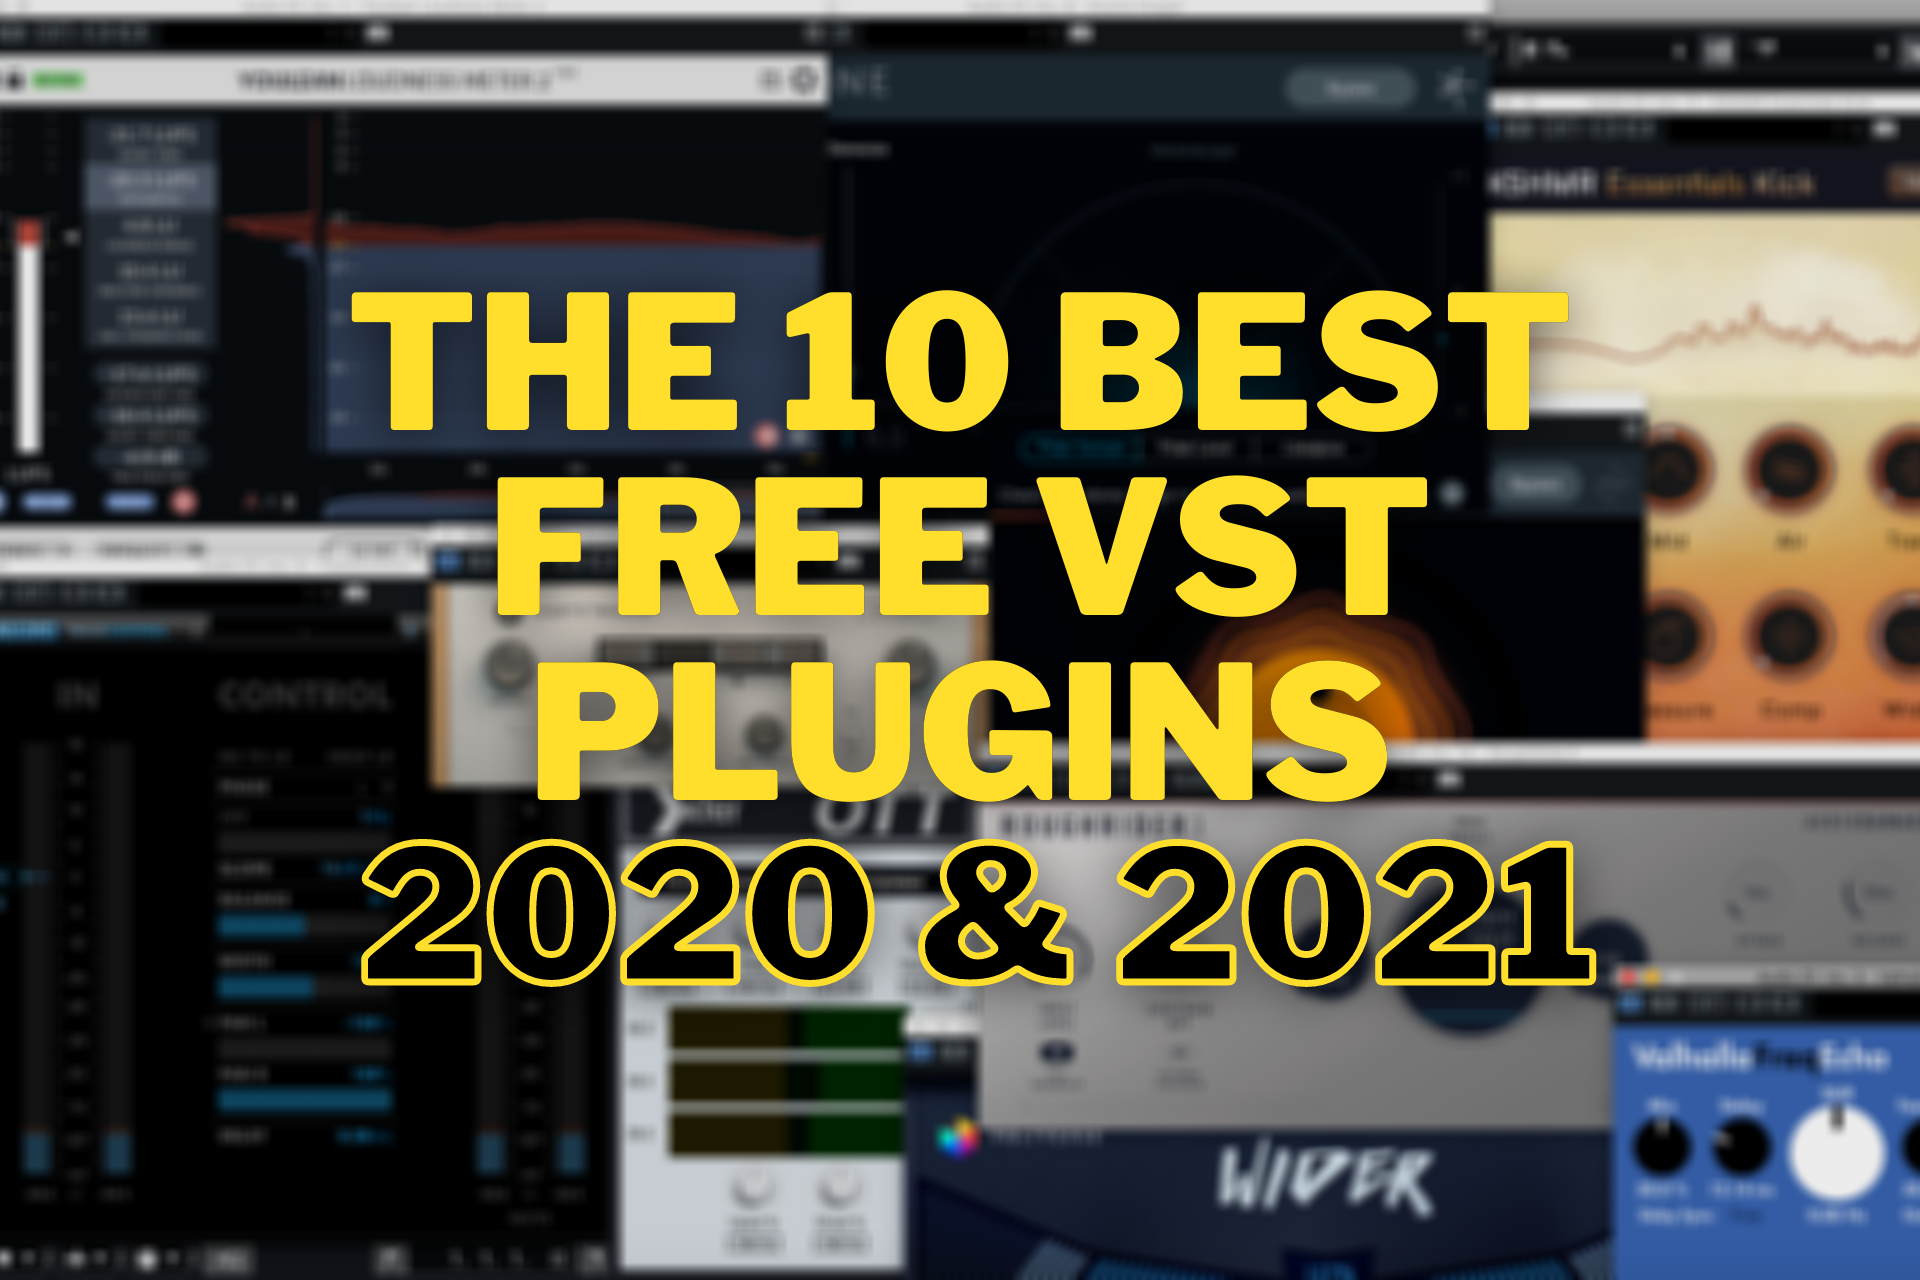 The 10 Best Free VST Plugins 2020 & 2021 - Cover Picture